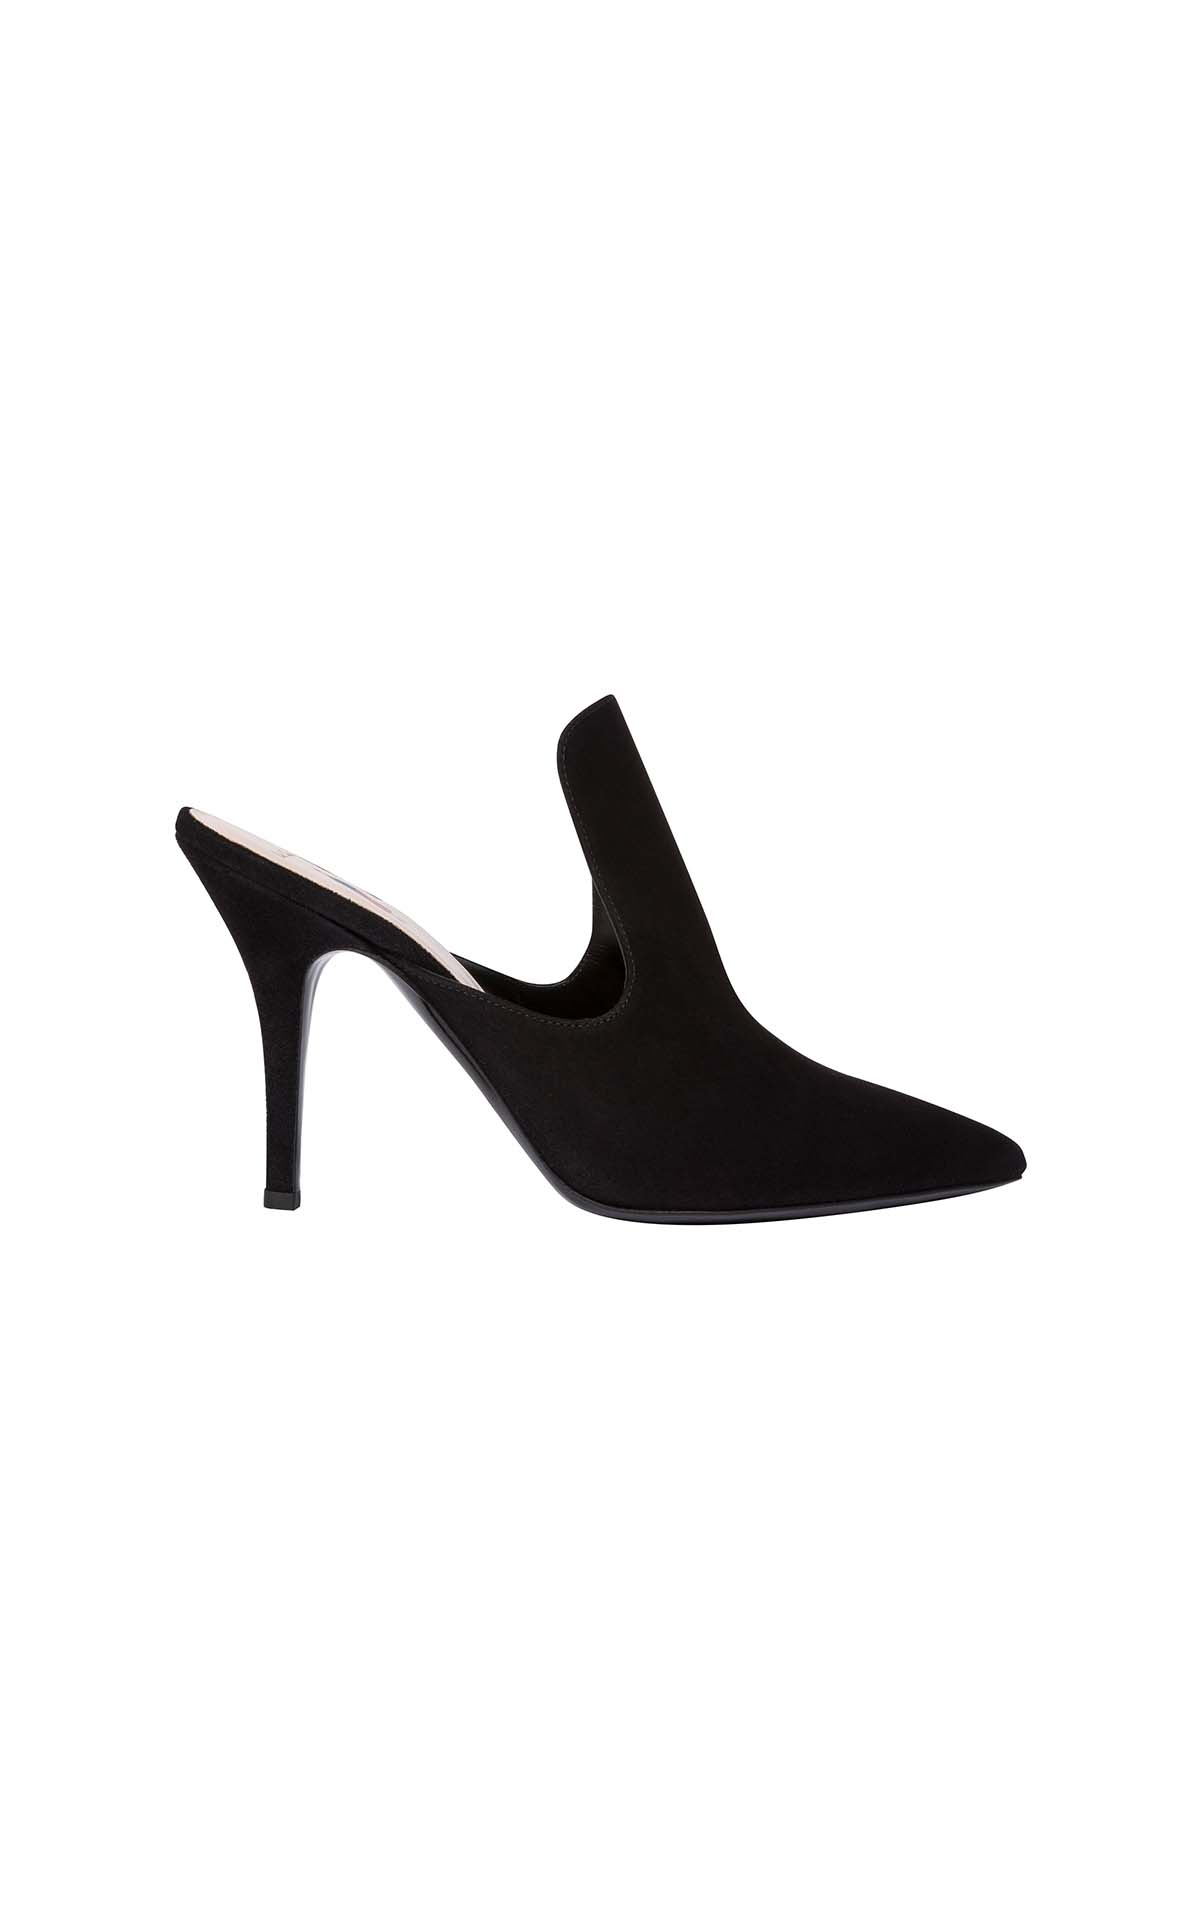 Paul Smith Women's black heels at The Bicester Village Shopping Collection